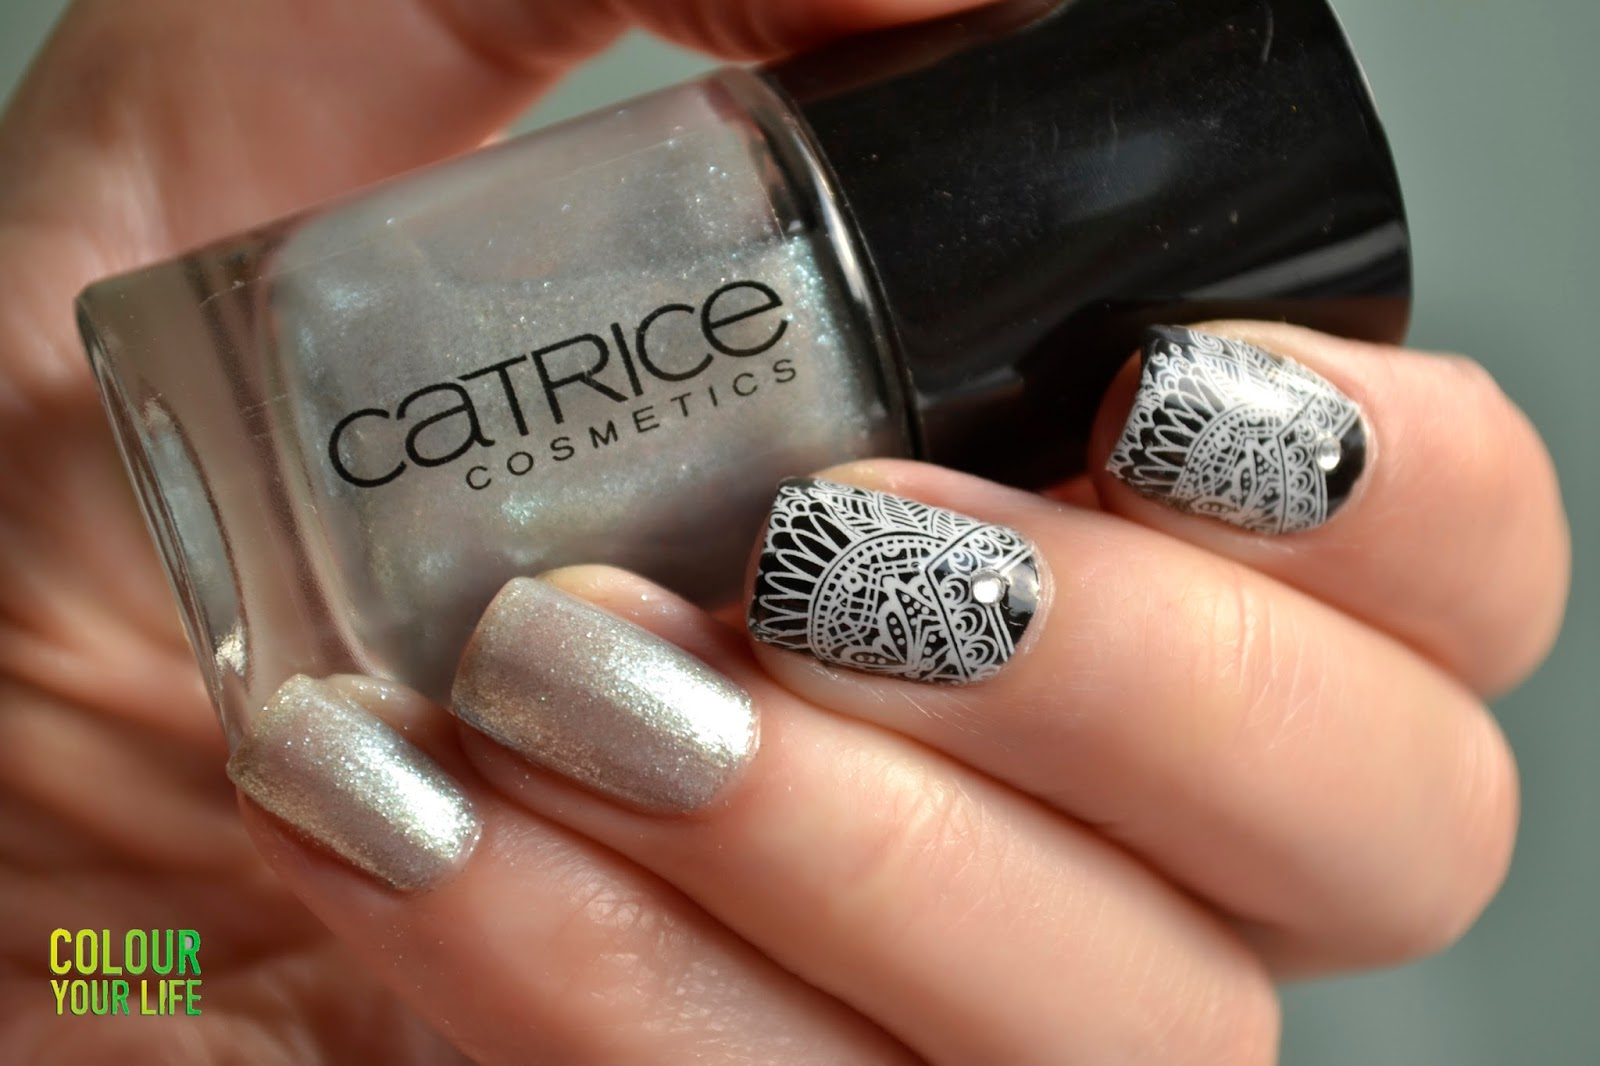 Colour your life: Elegant nails with Catrice